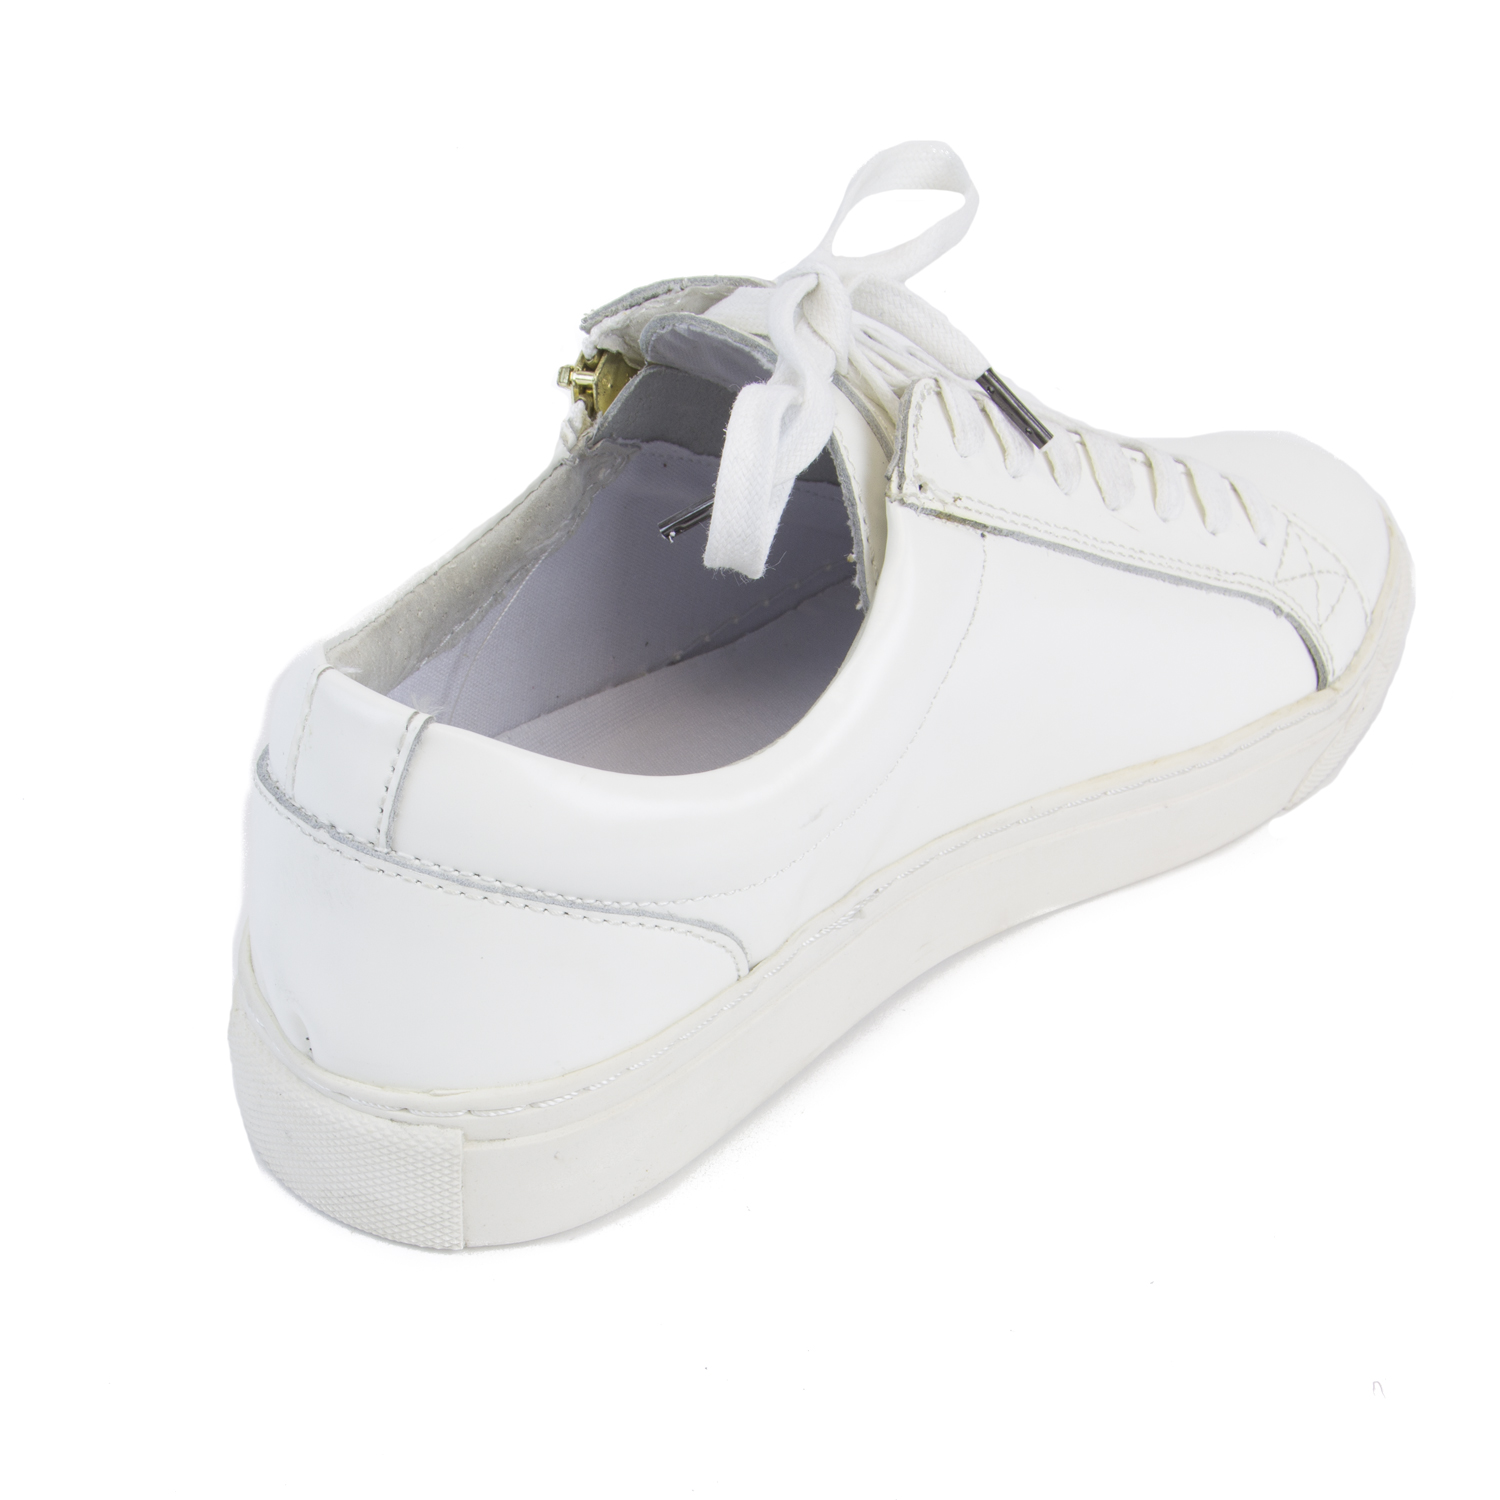 About Zip Religion Men's Uk Nib 7160 Iron Details Sneakers Hi White Shine Detail 6us lKcF1JT3